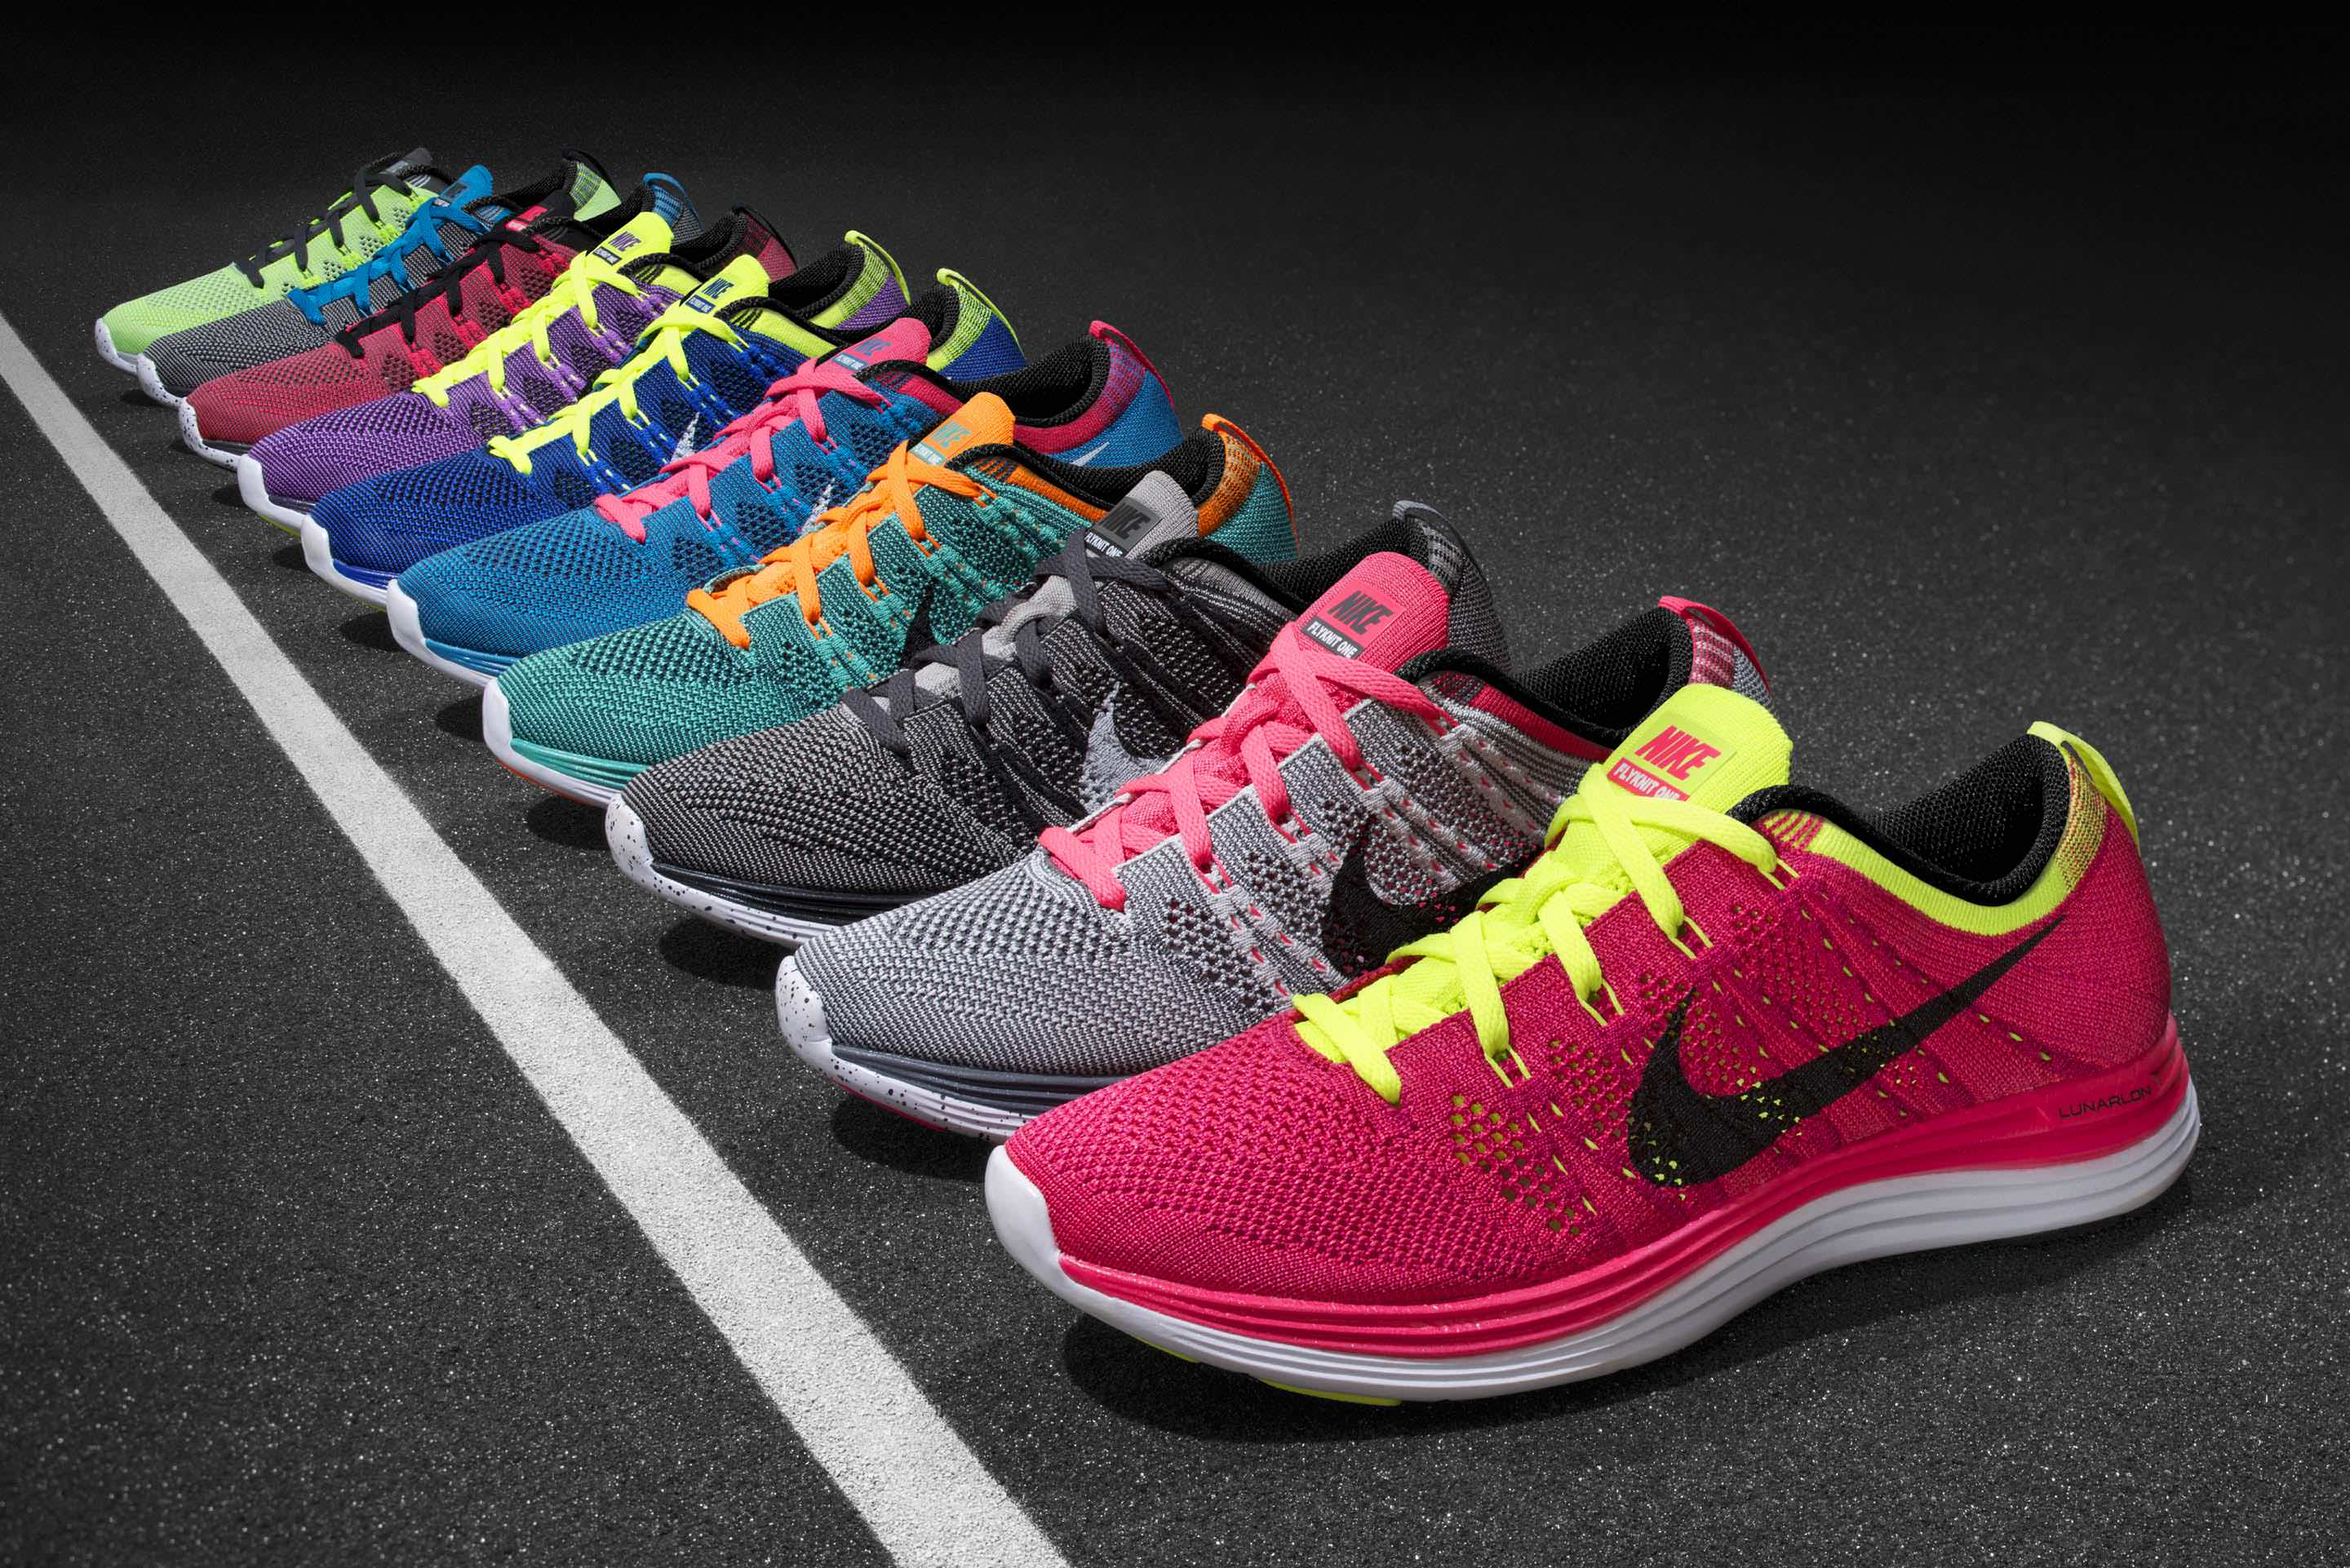 Nike Running Shoes - Understanding the Nike Line-up